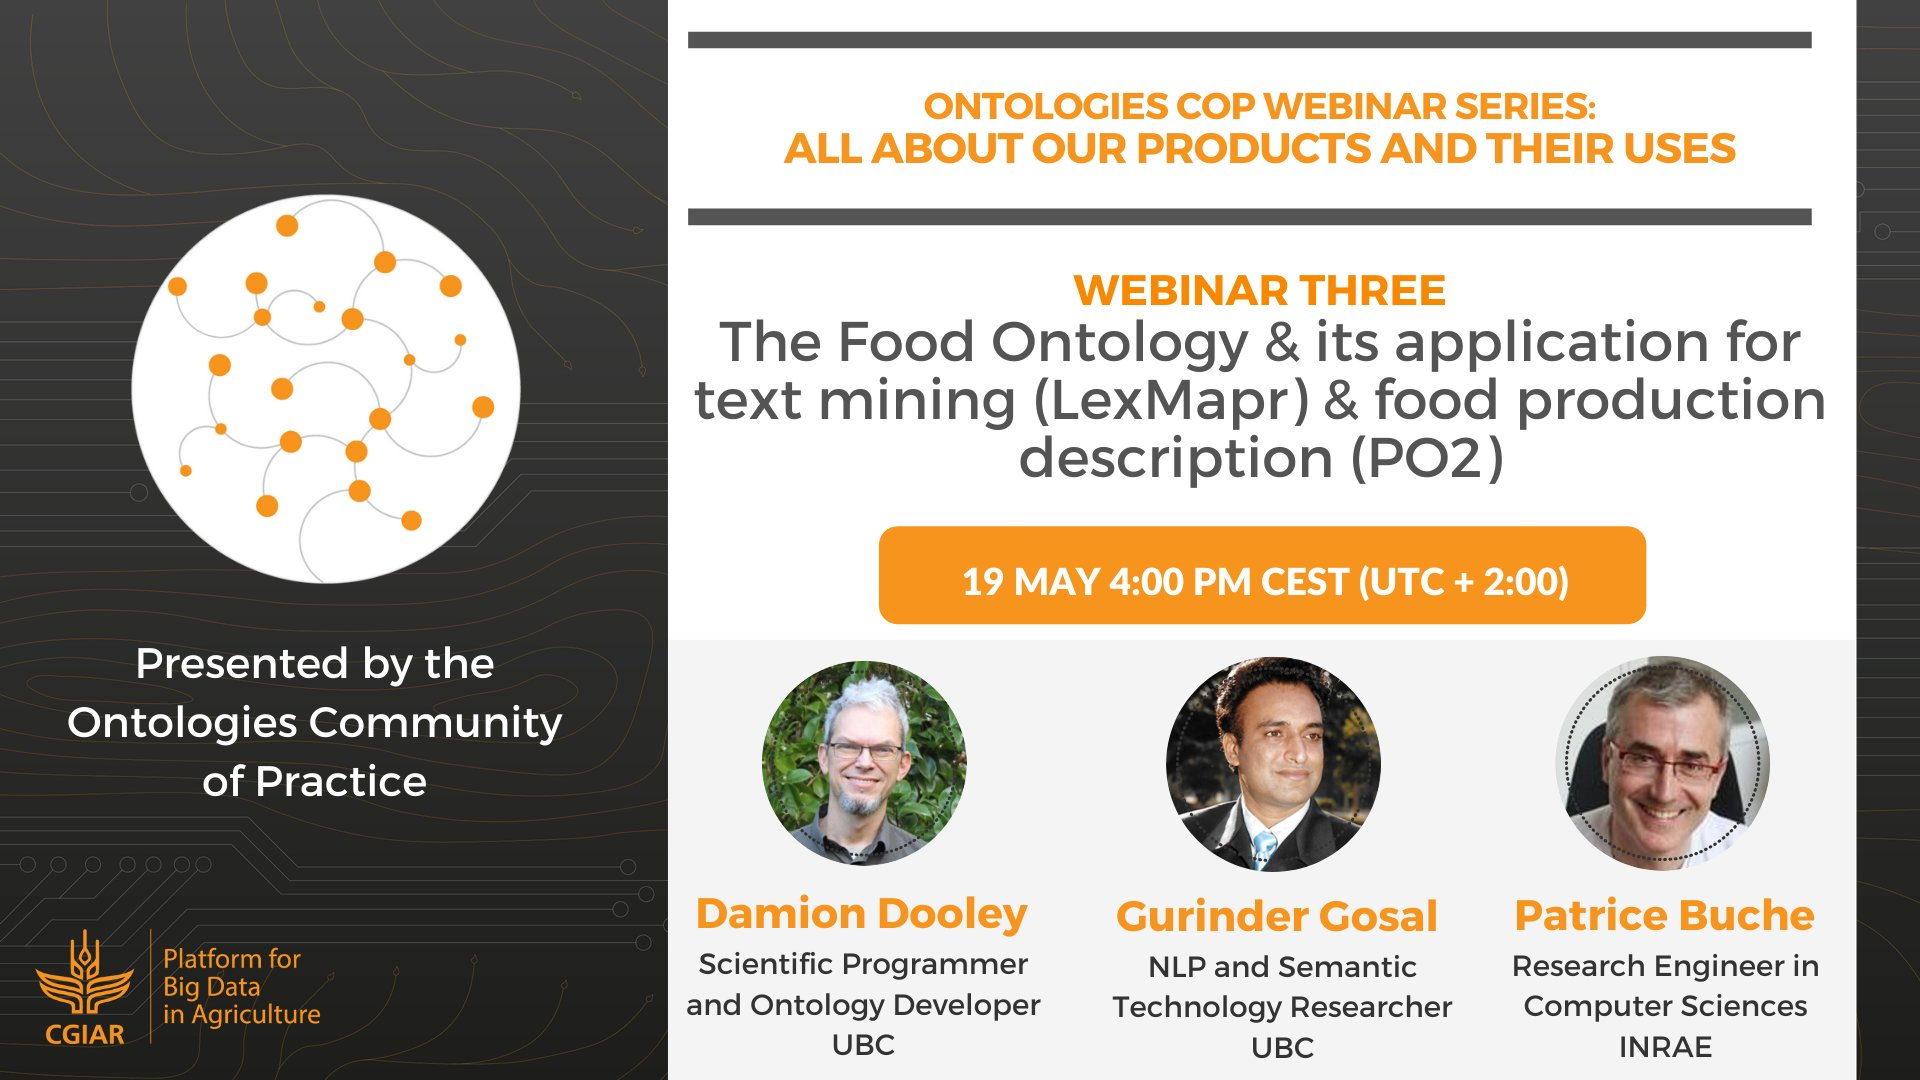 The Food Ontology, and Its Application for Text Mining (LexMapr), and Food Production Description (PO2)